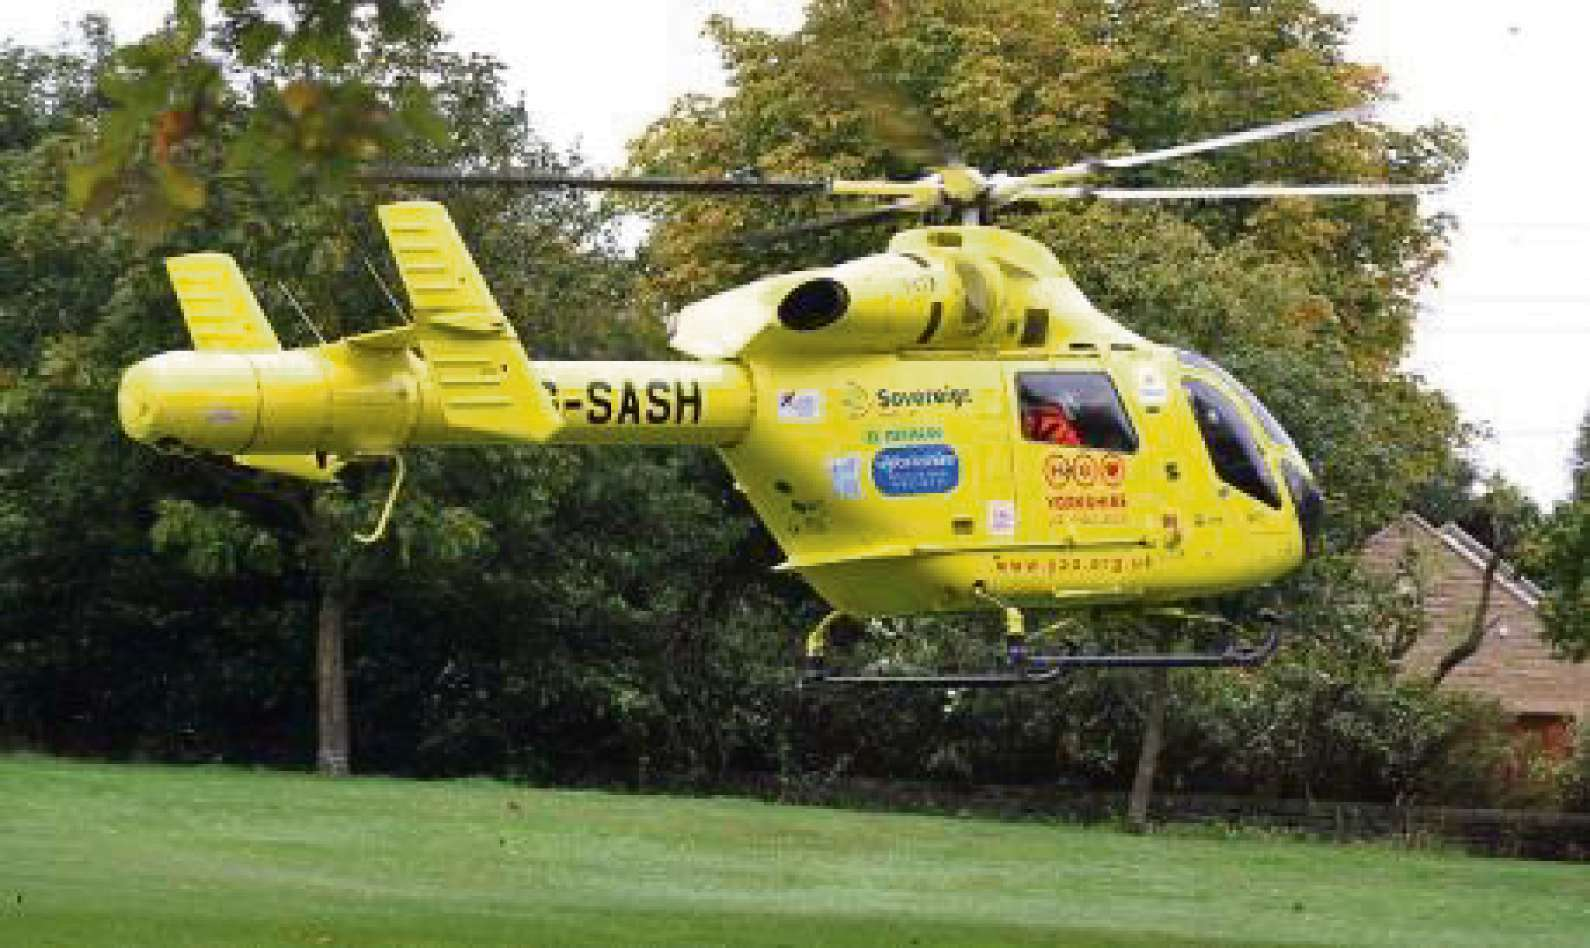 A66 CRASH: Yorkshire Air Ambulance took the woman to James Cook Hospital